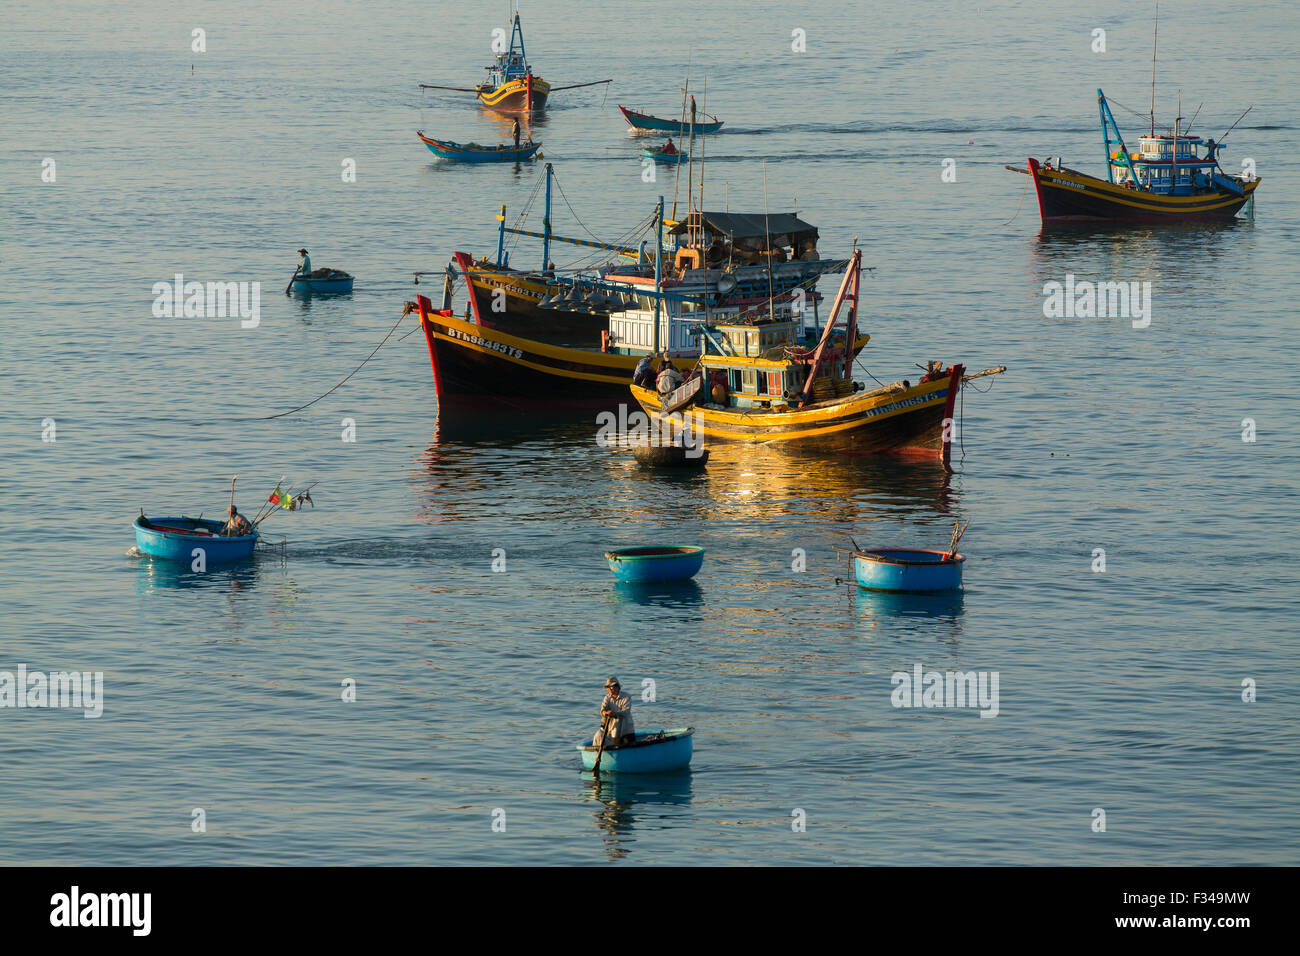 boats anchored off Mũi Né fishing village, Bình Thuận Province, Vietnam - Stock Image